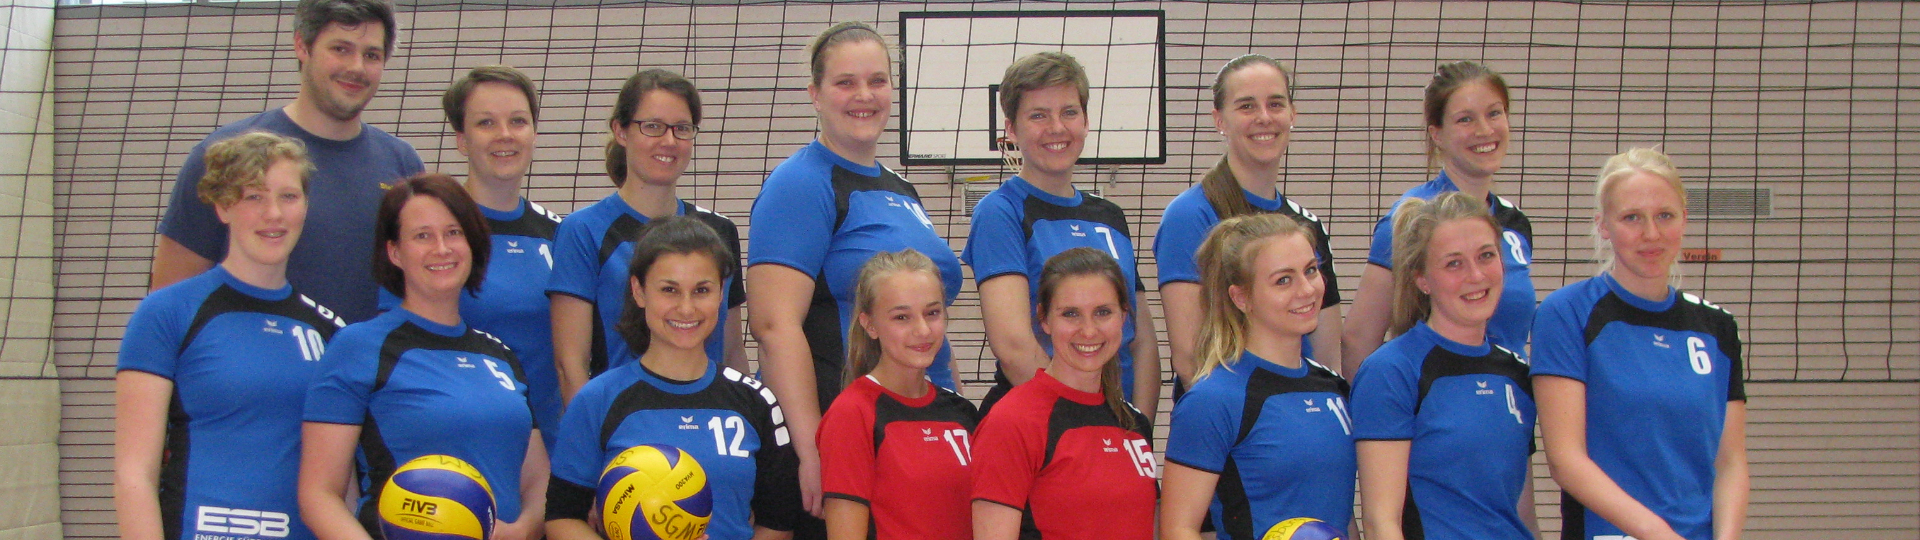 Teamsport Volleyball bei der SG Moosburg